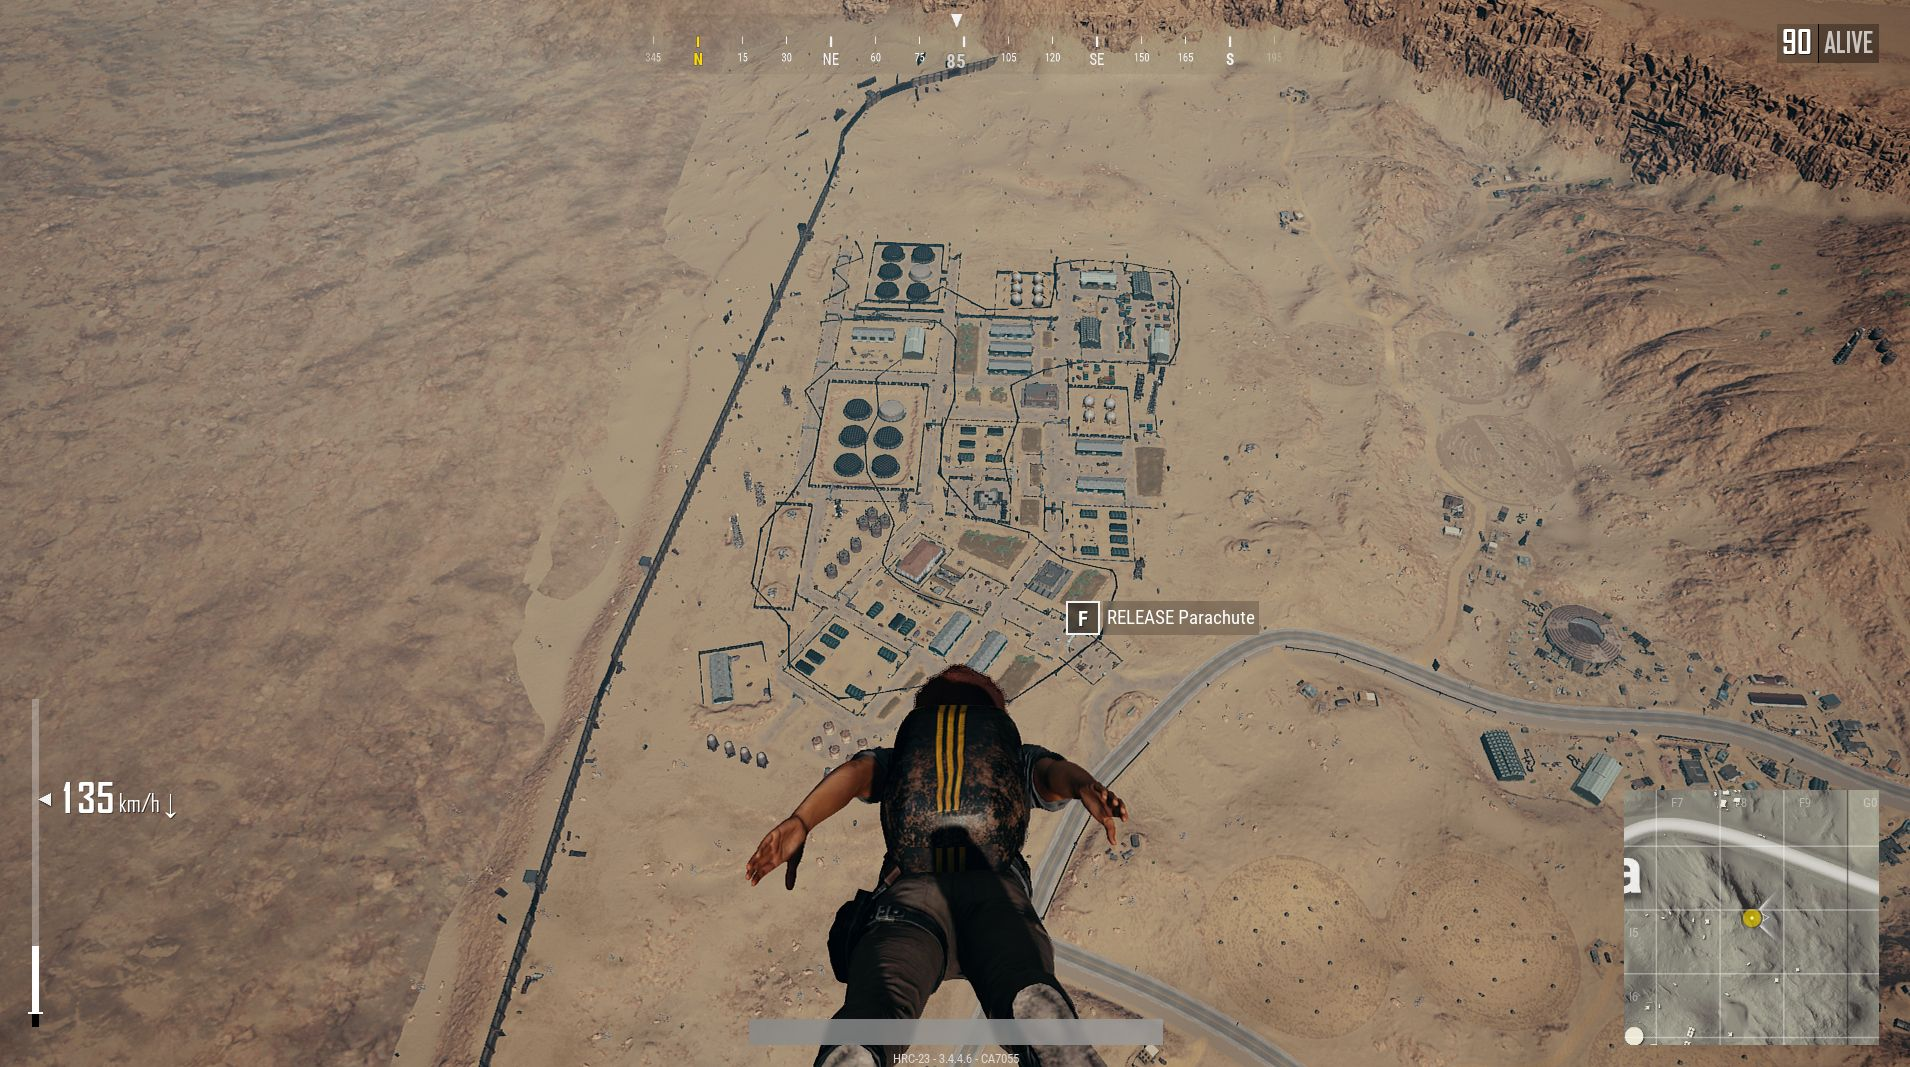 Pubg Hdr Graphics: 2017 Was The Year Graphics Became Less Important Than Ever